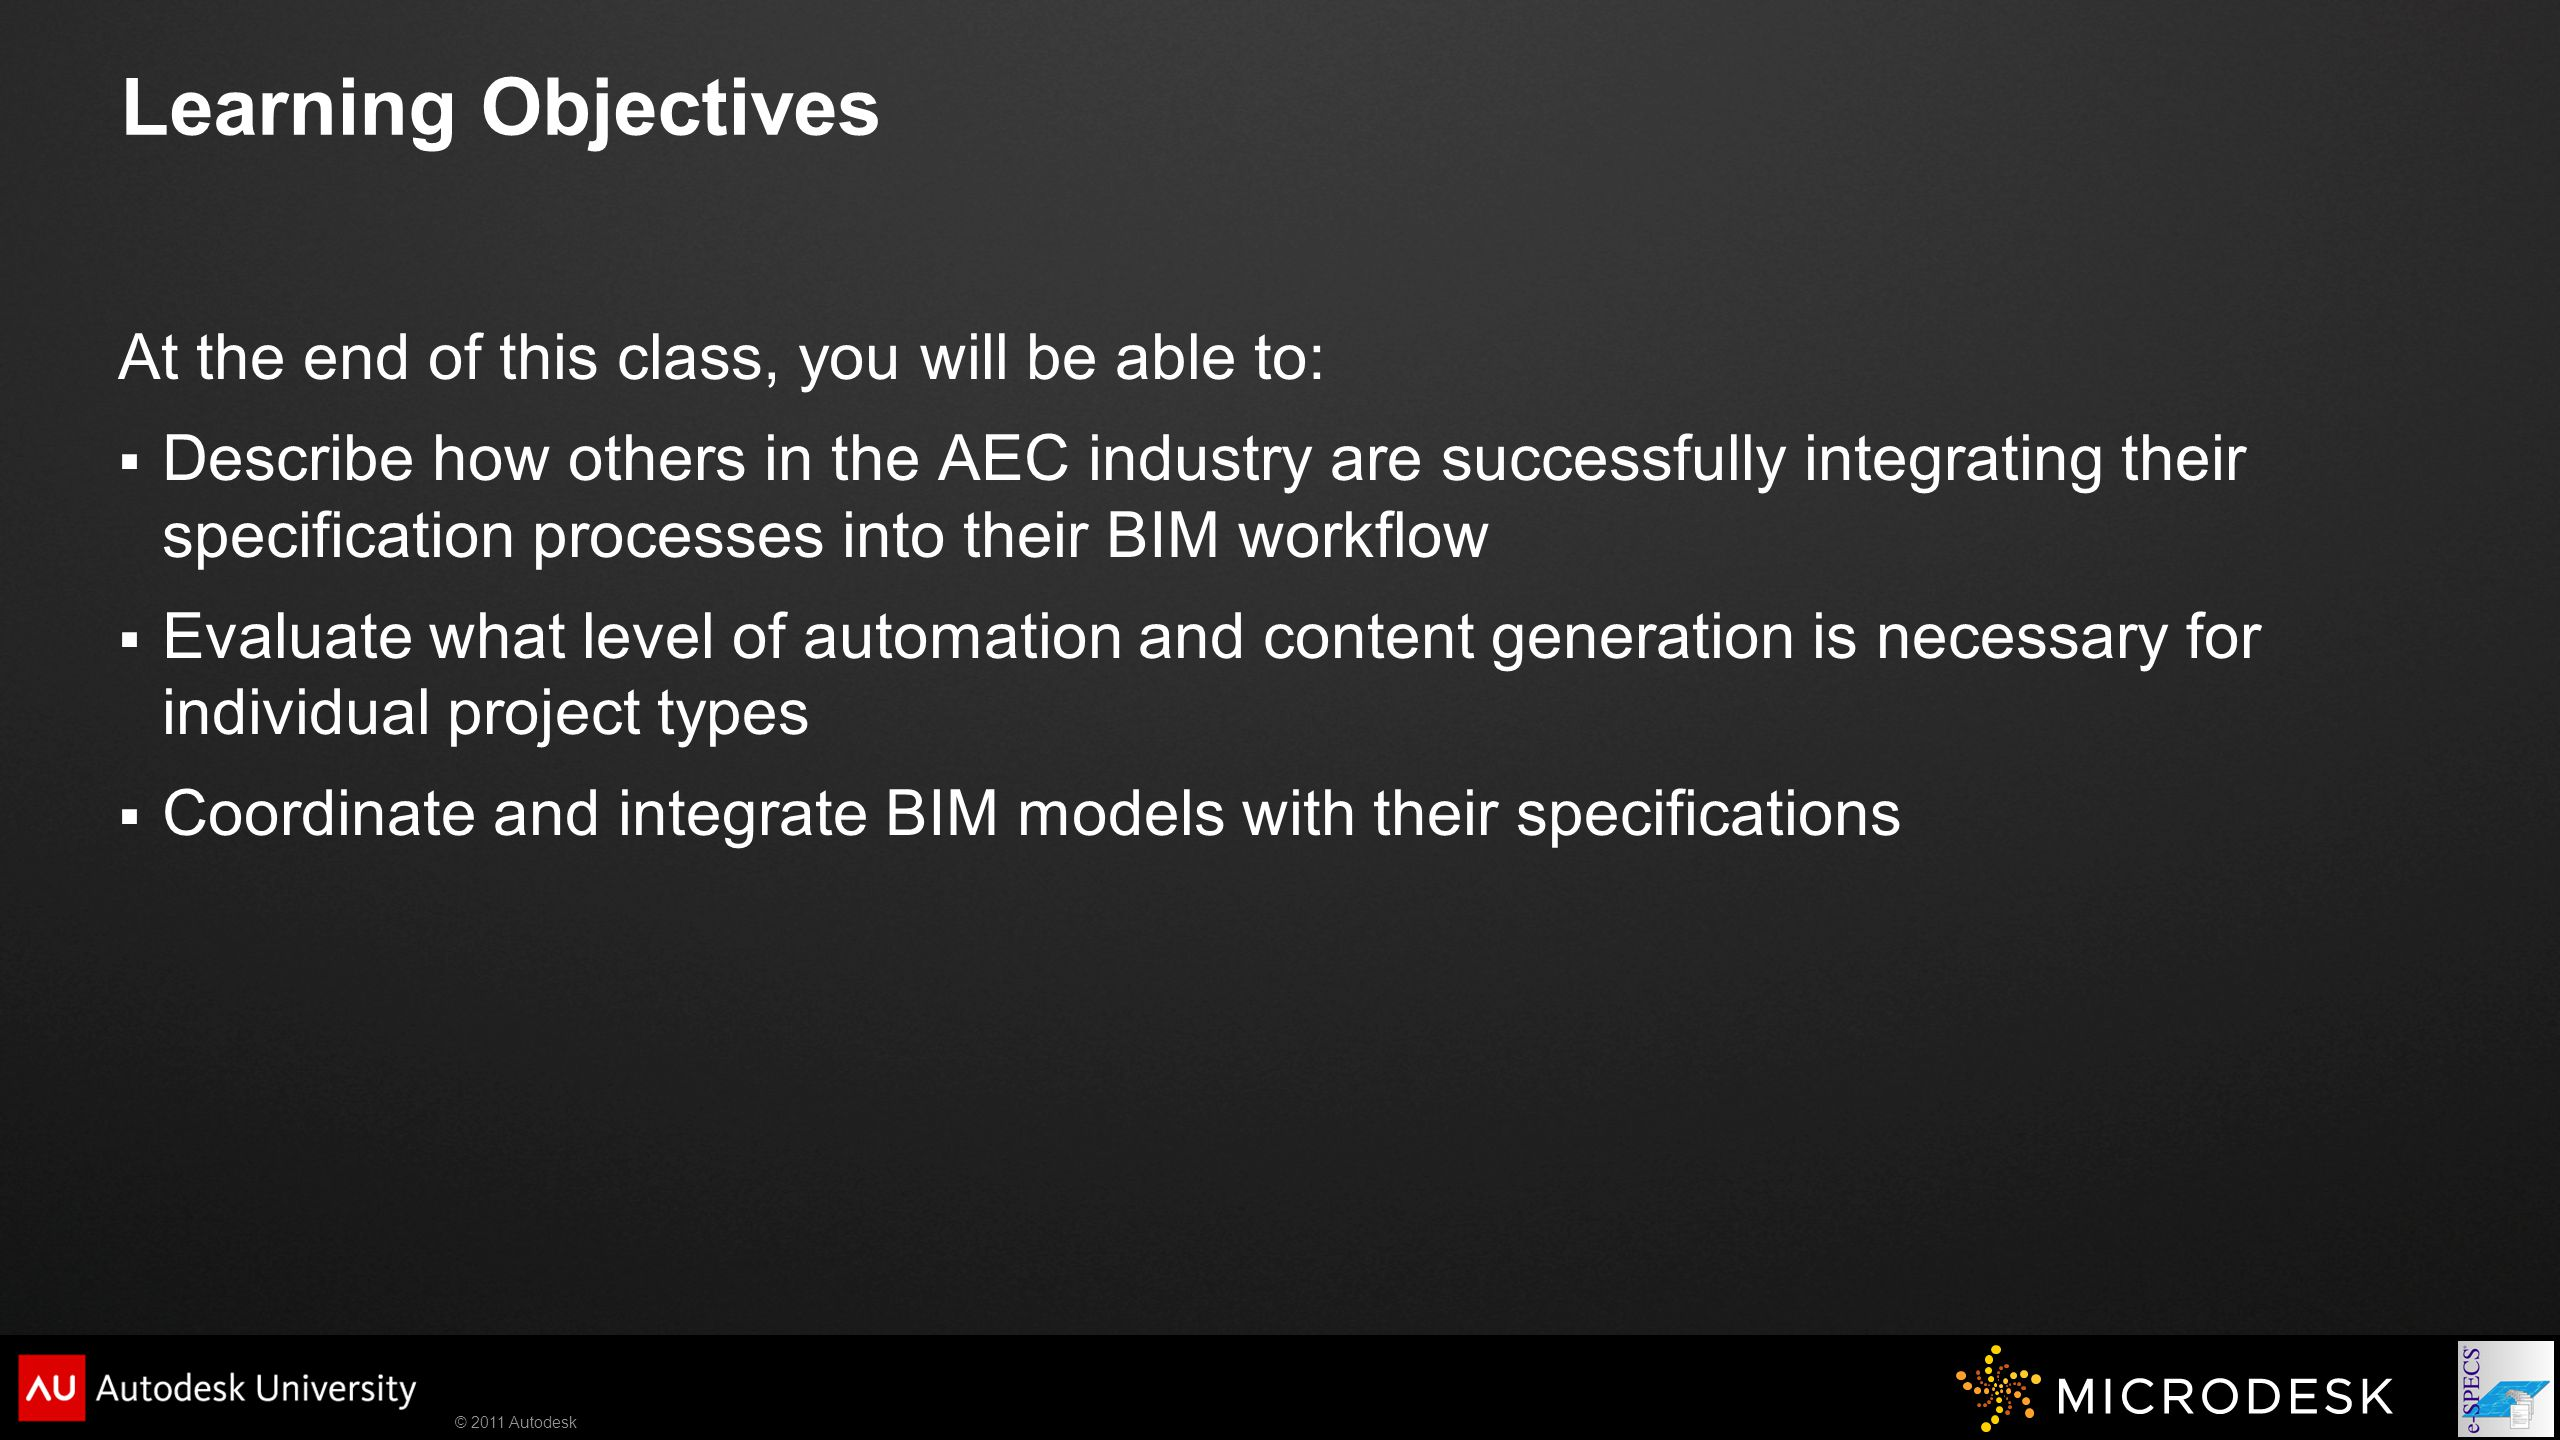 © 2011 Autodesk Learning Objectives At the end of this class, you will be able to:  Describe how others in the AEC industry are successfully integrating their specification processes into their BIM workflow  Evaluate what level of automation and content generation is necessary for individual project types  Coordinate and integrate BIM models with their specifications